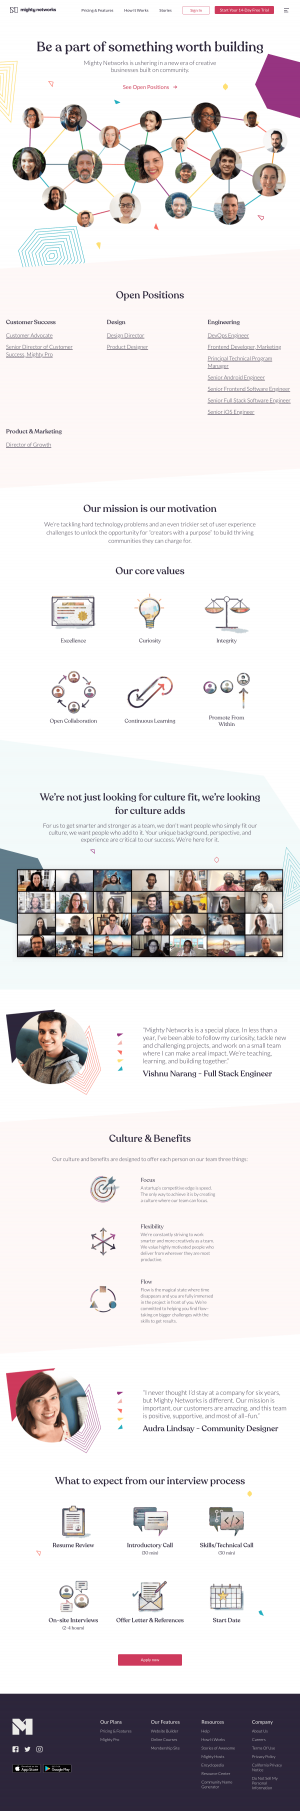 Mighty Networks – Careers page